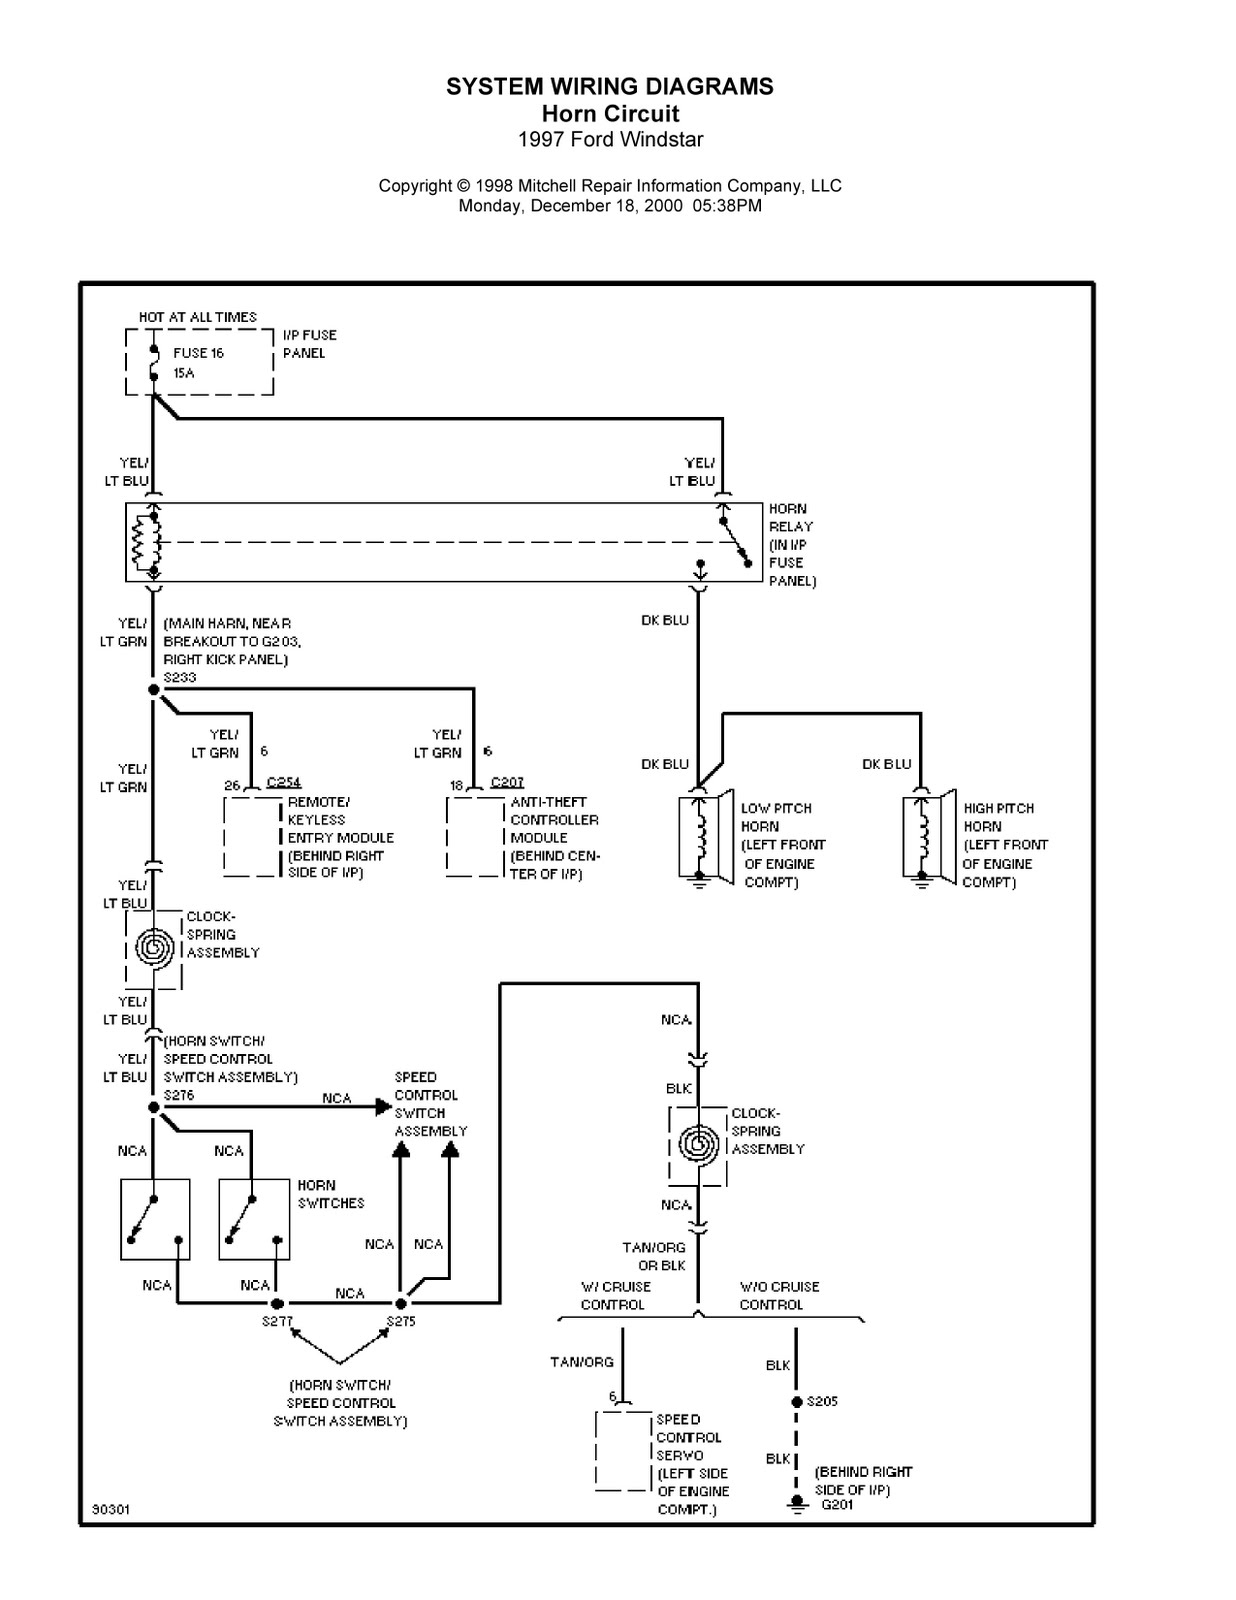 1997 Ford Windstar Complete System Wiring Diagrams Remote Keyless Entry Diagram We Provide You The Clear And Readable Images This Makes Easier To Comprehend Whole Parts In Schematic